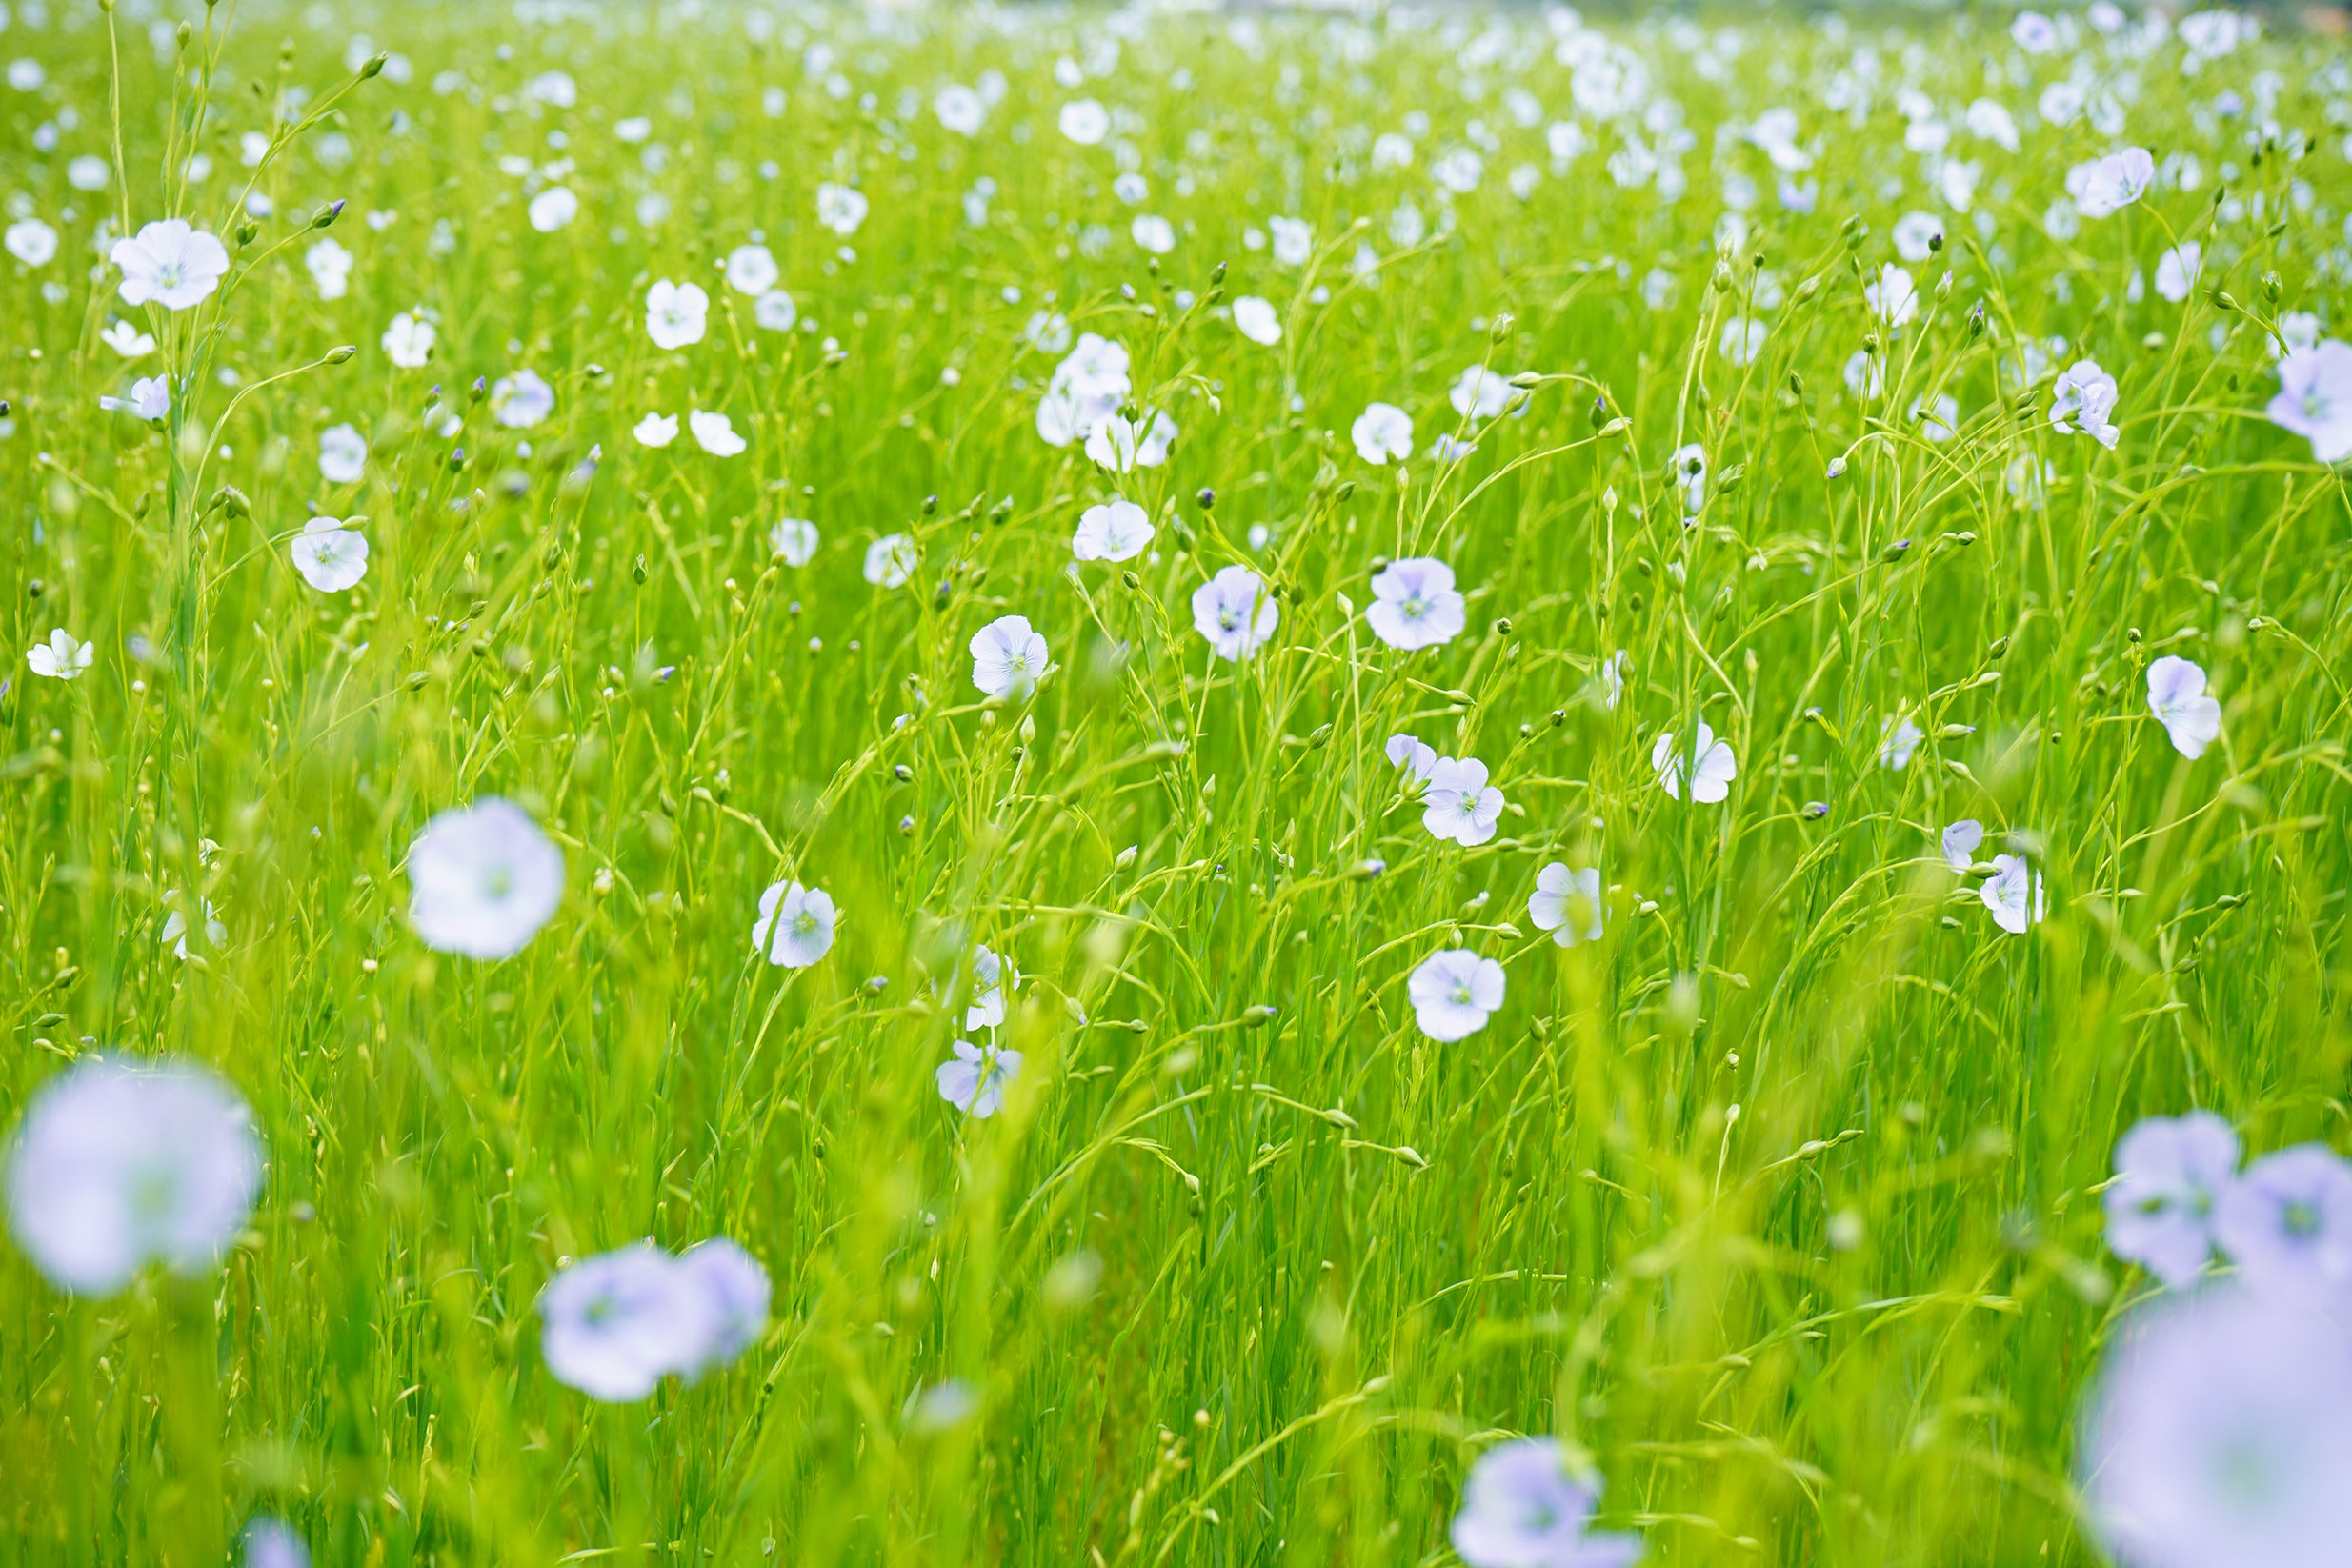 Field of flax flowers